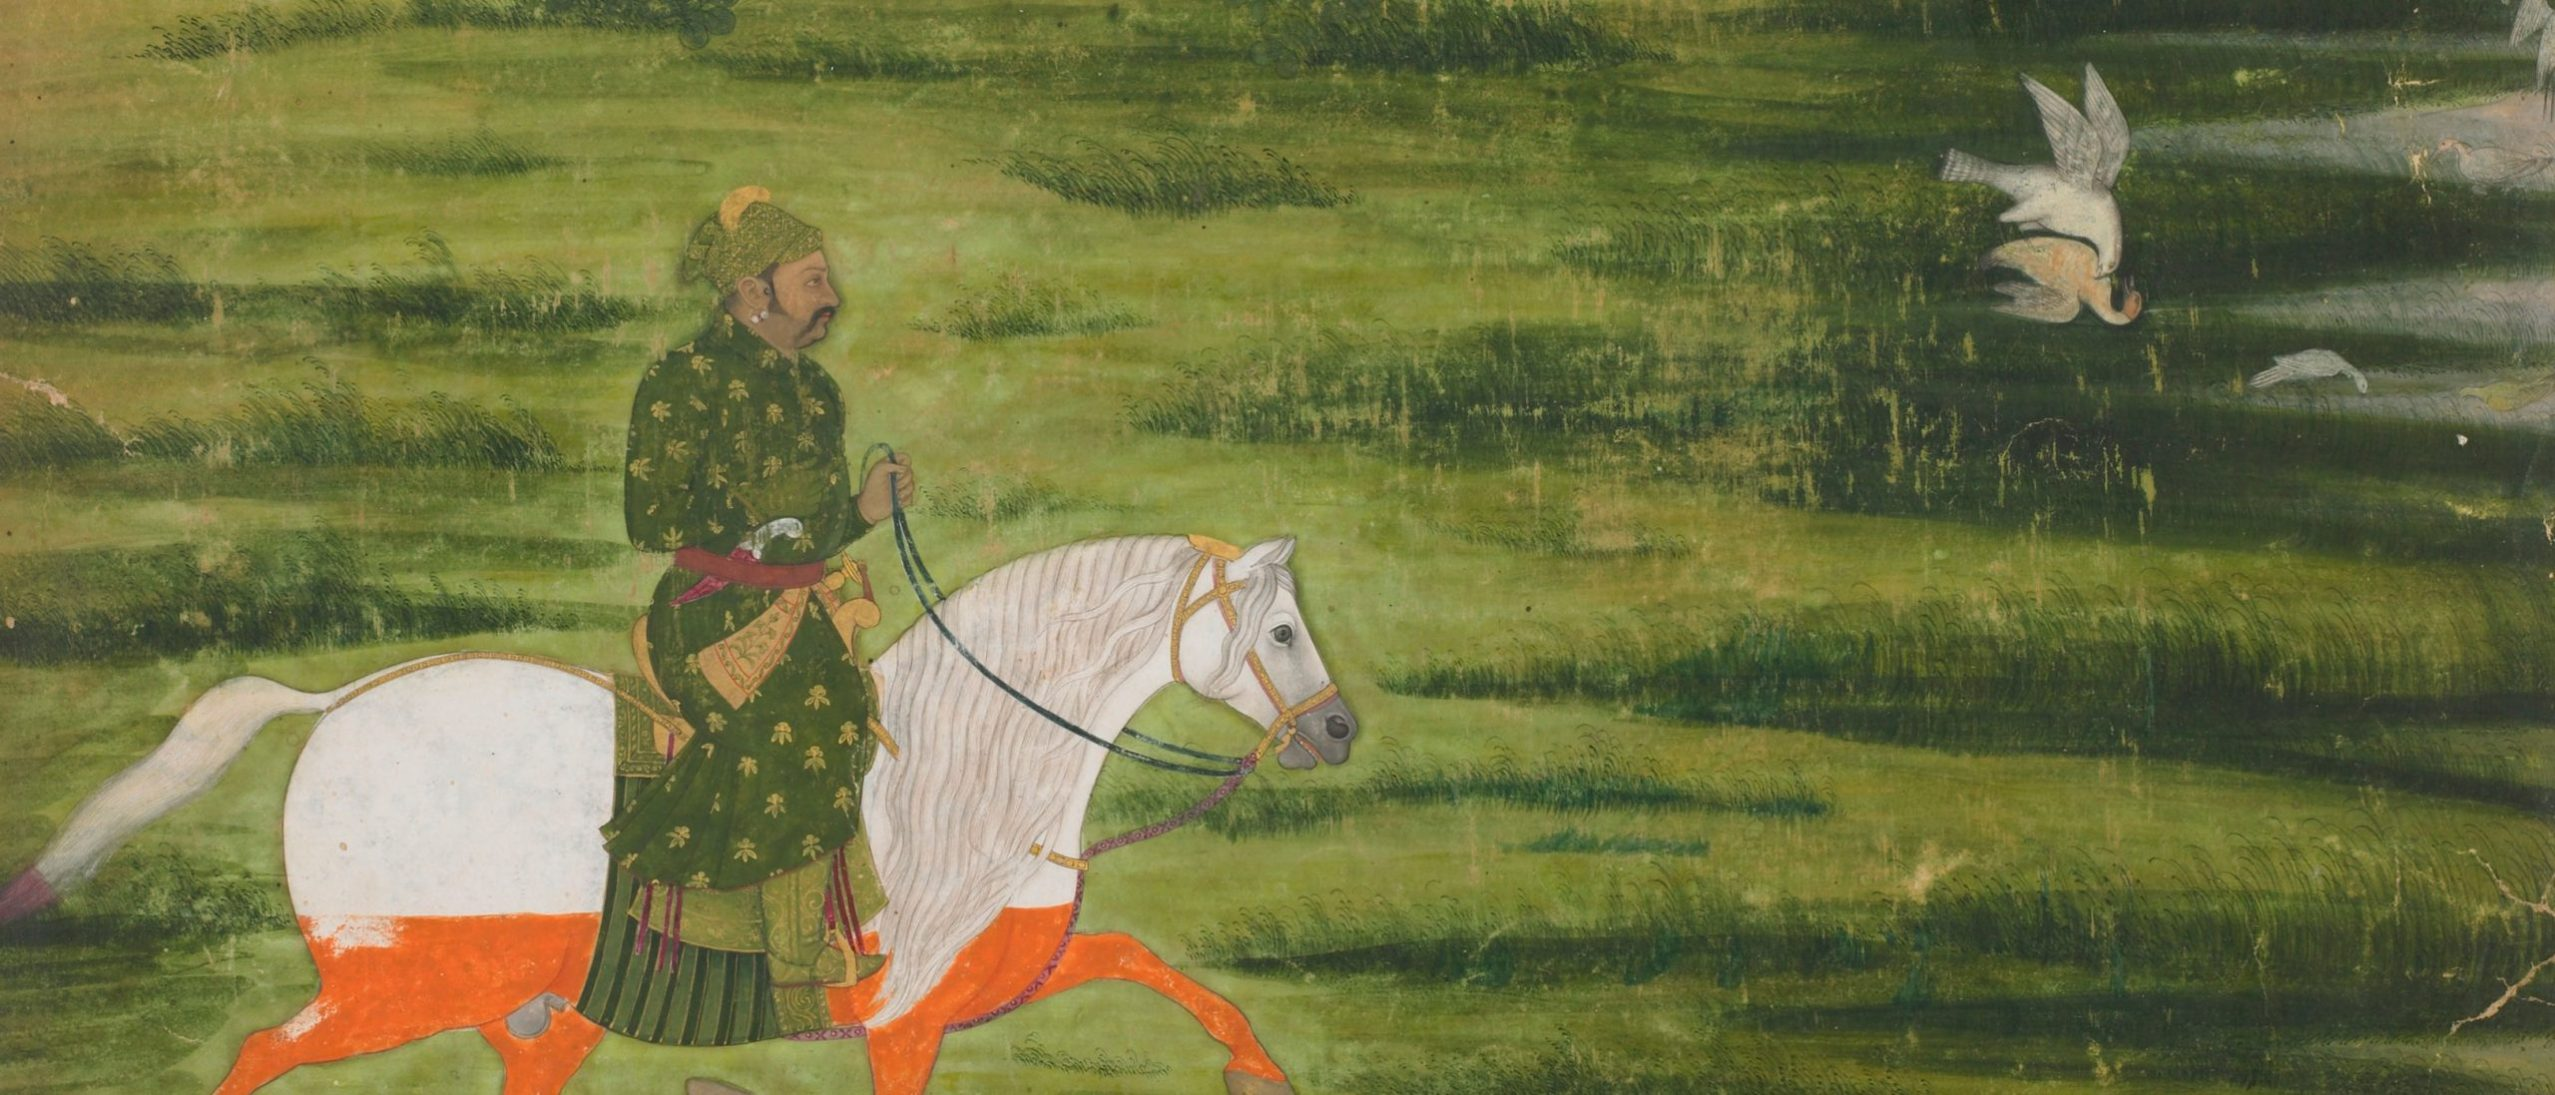 Detail from a painting. A man in green rides a white horse with orange legs across a wide field. A falcon attacks another bird in the upper right corner.